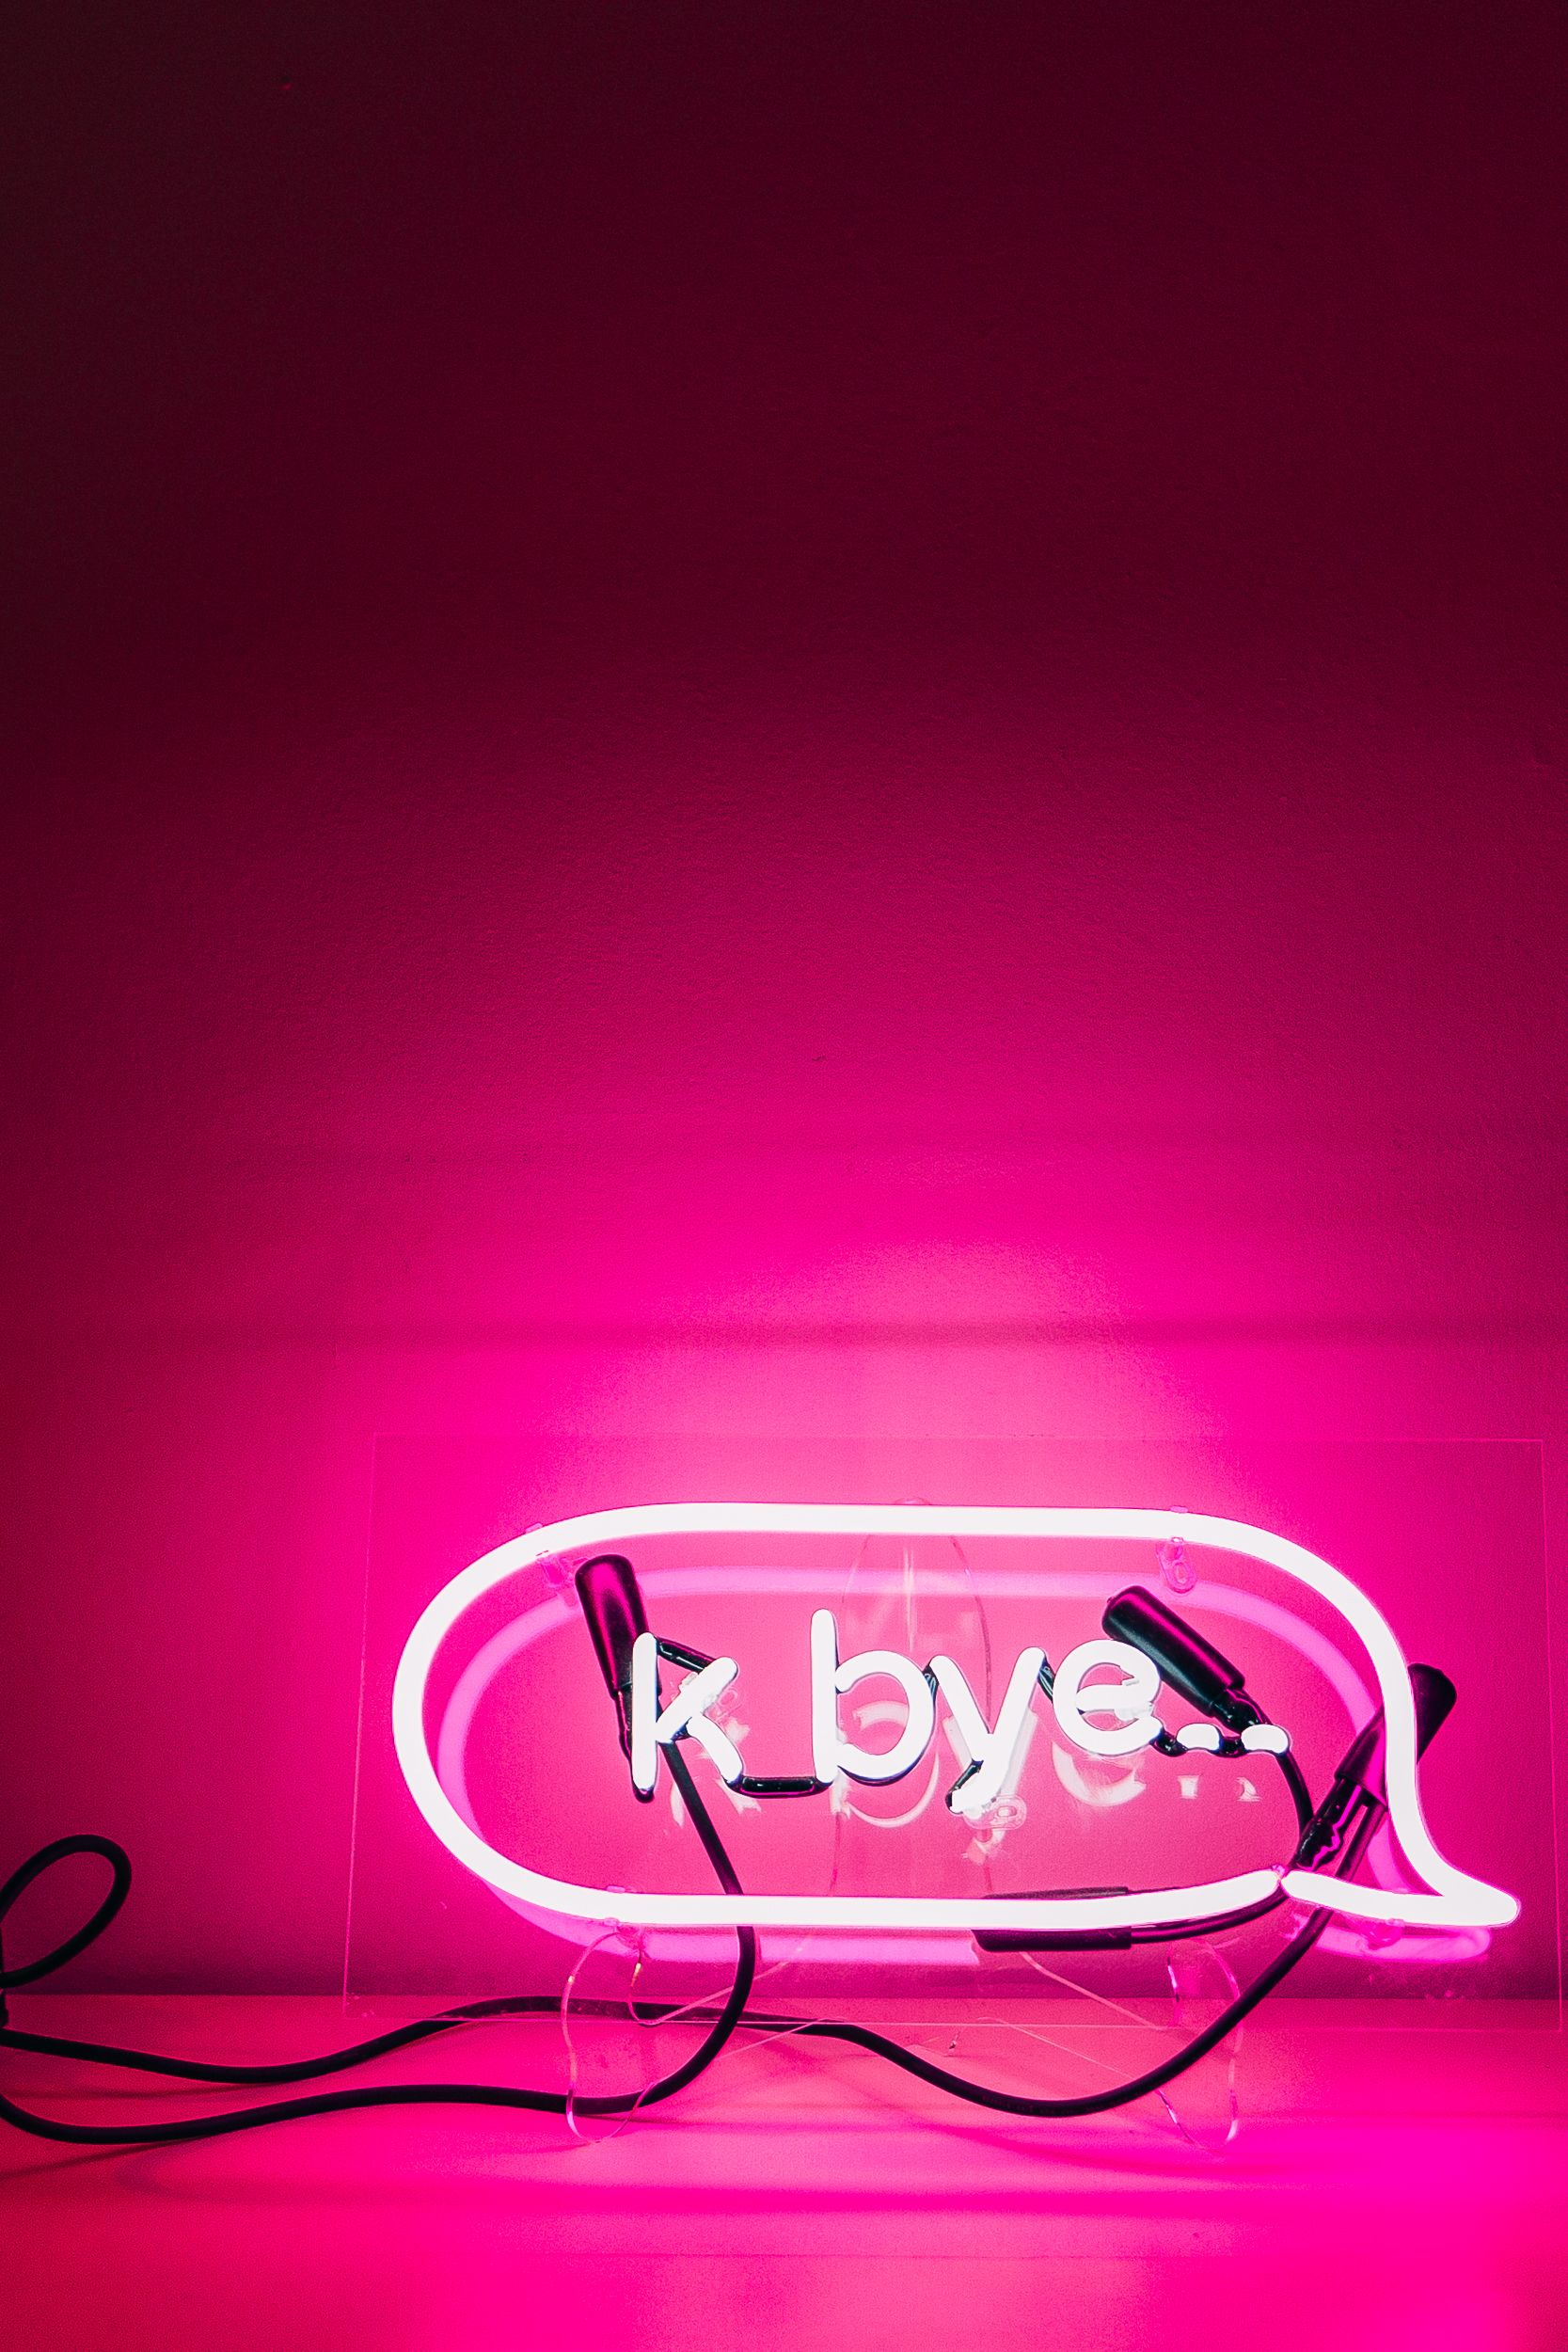 Neon Sign Wallpapers - Top Free Neon Sign Backgrounds ...